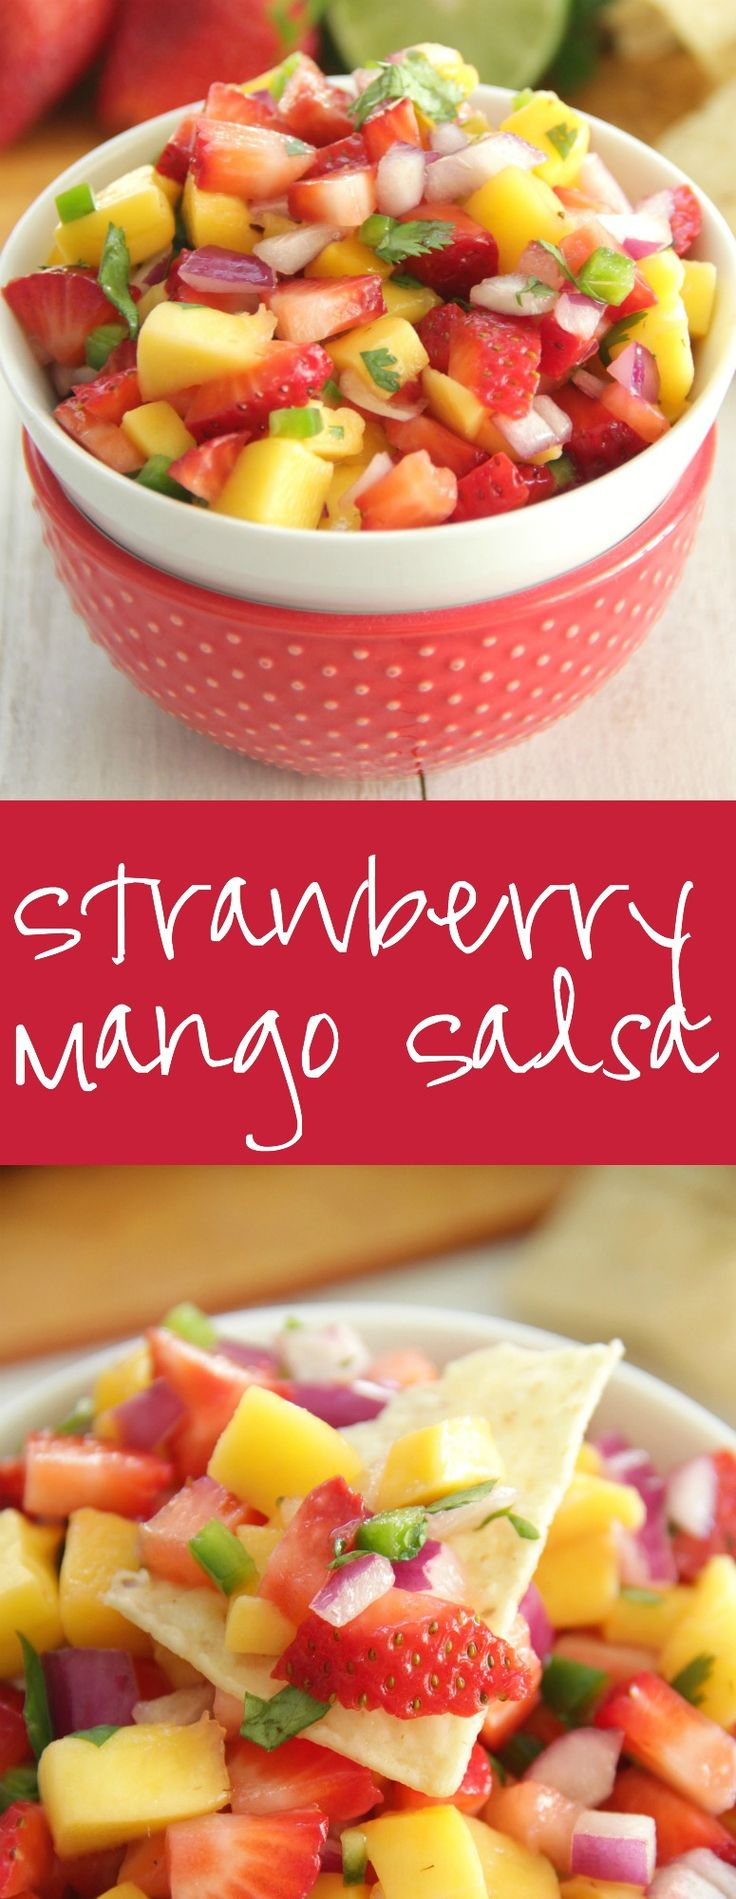 Best 25 strawberry mango salsa ideas on pinterest fish recipes strawberry mango salsa perfect with chips or over chicken or fish ccuart Image collections